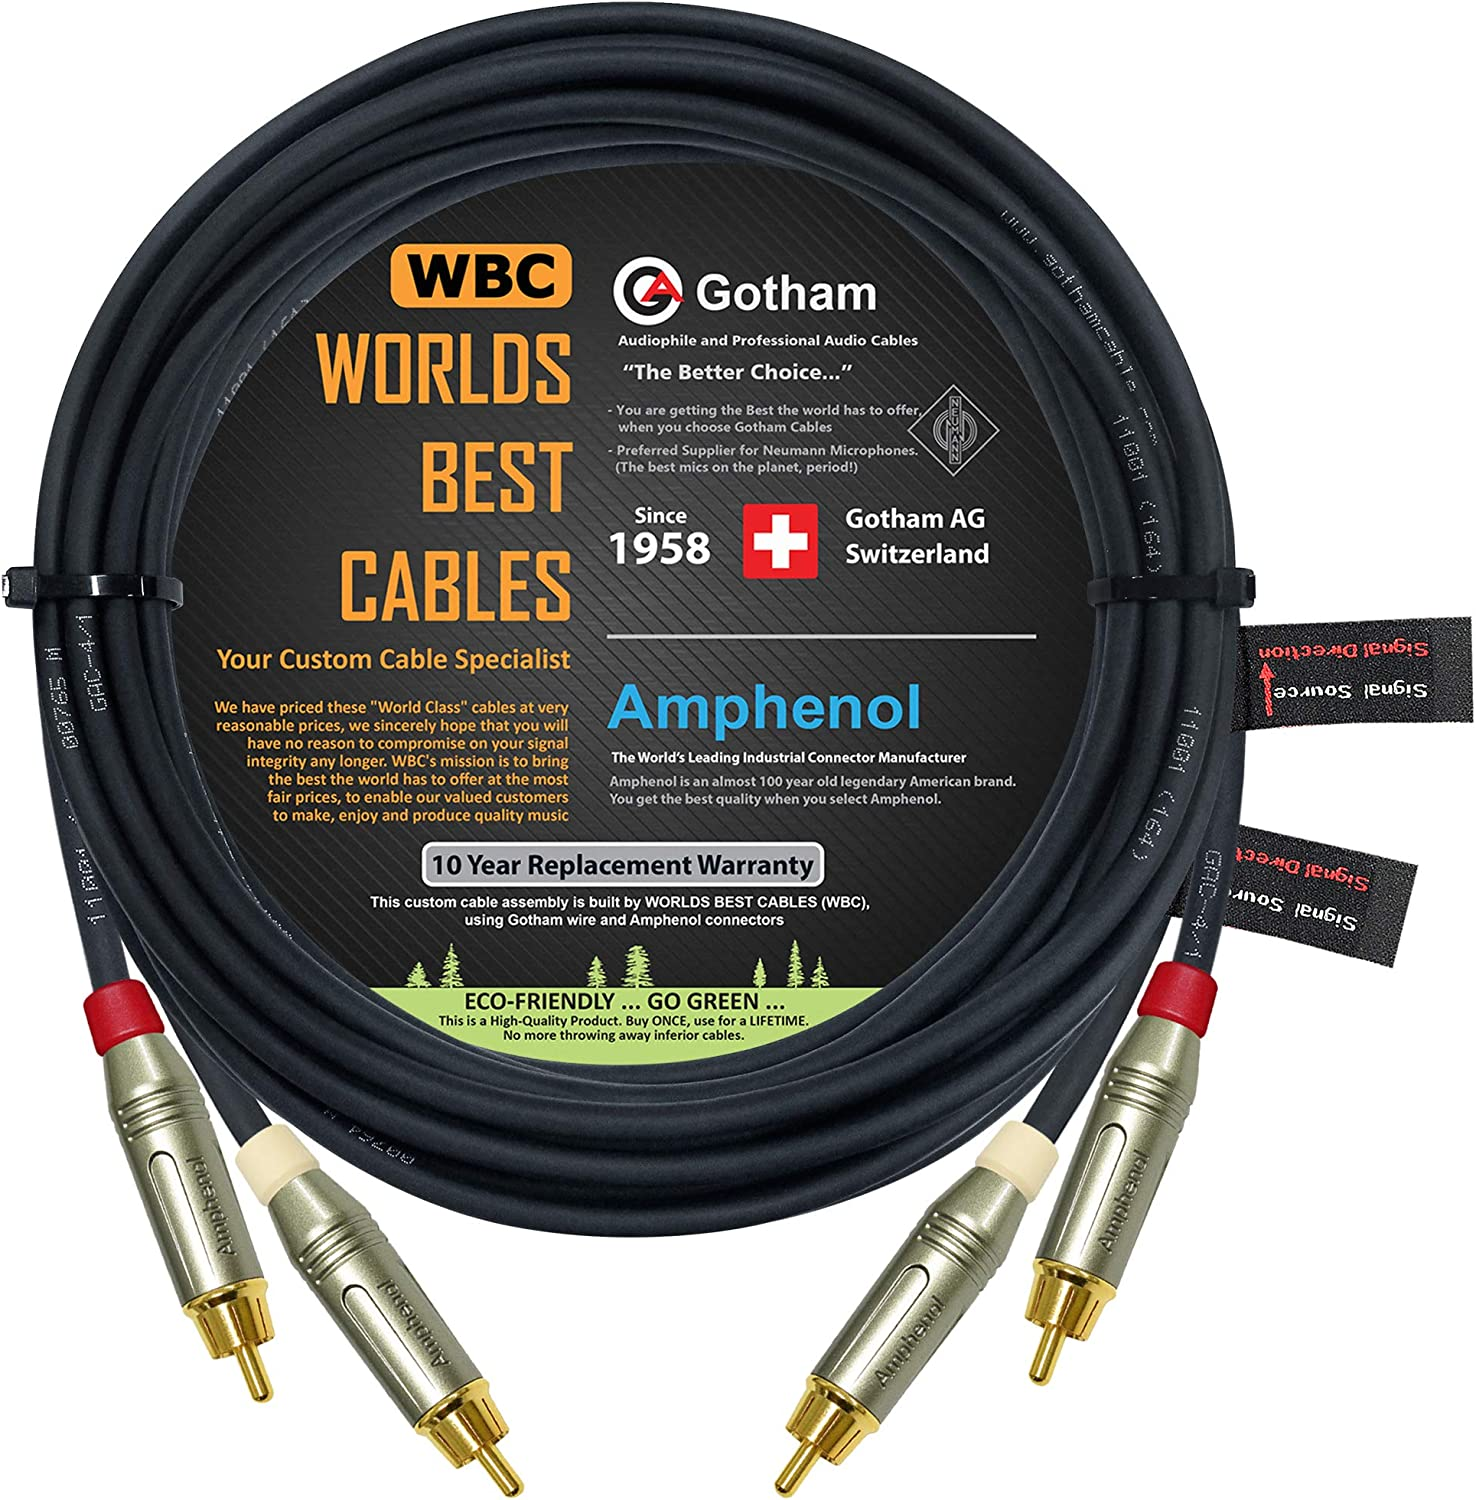 Gotham GAC-4//1 Gold Plated RCA Connectors 2 Foot RCA Cable Pair Star-Quad Audio Interconnect Cable with Amphenol ACPR Die-Cast Black Directional